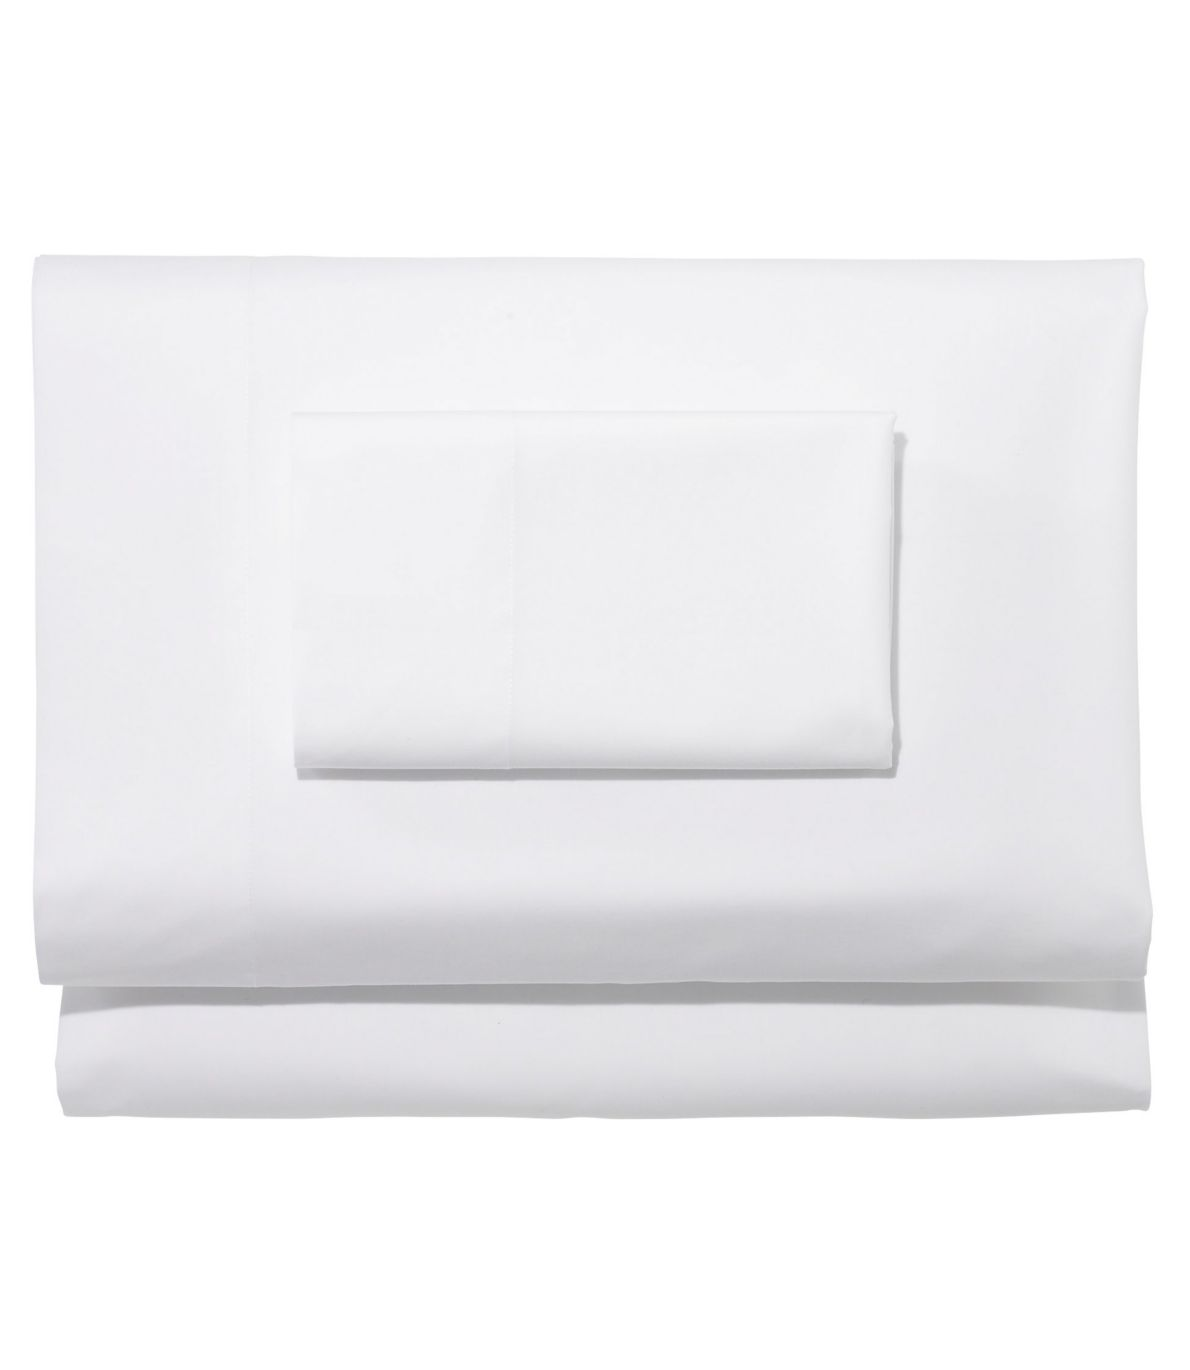 TENCEL Lyocell Percale Sheet Collection